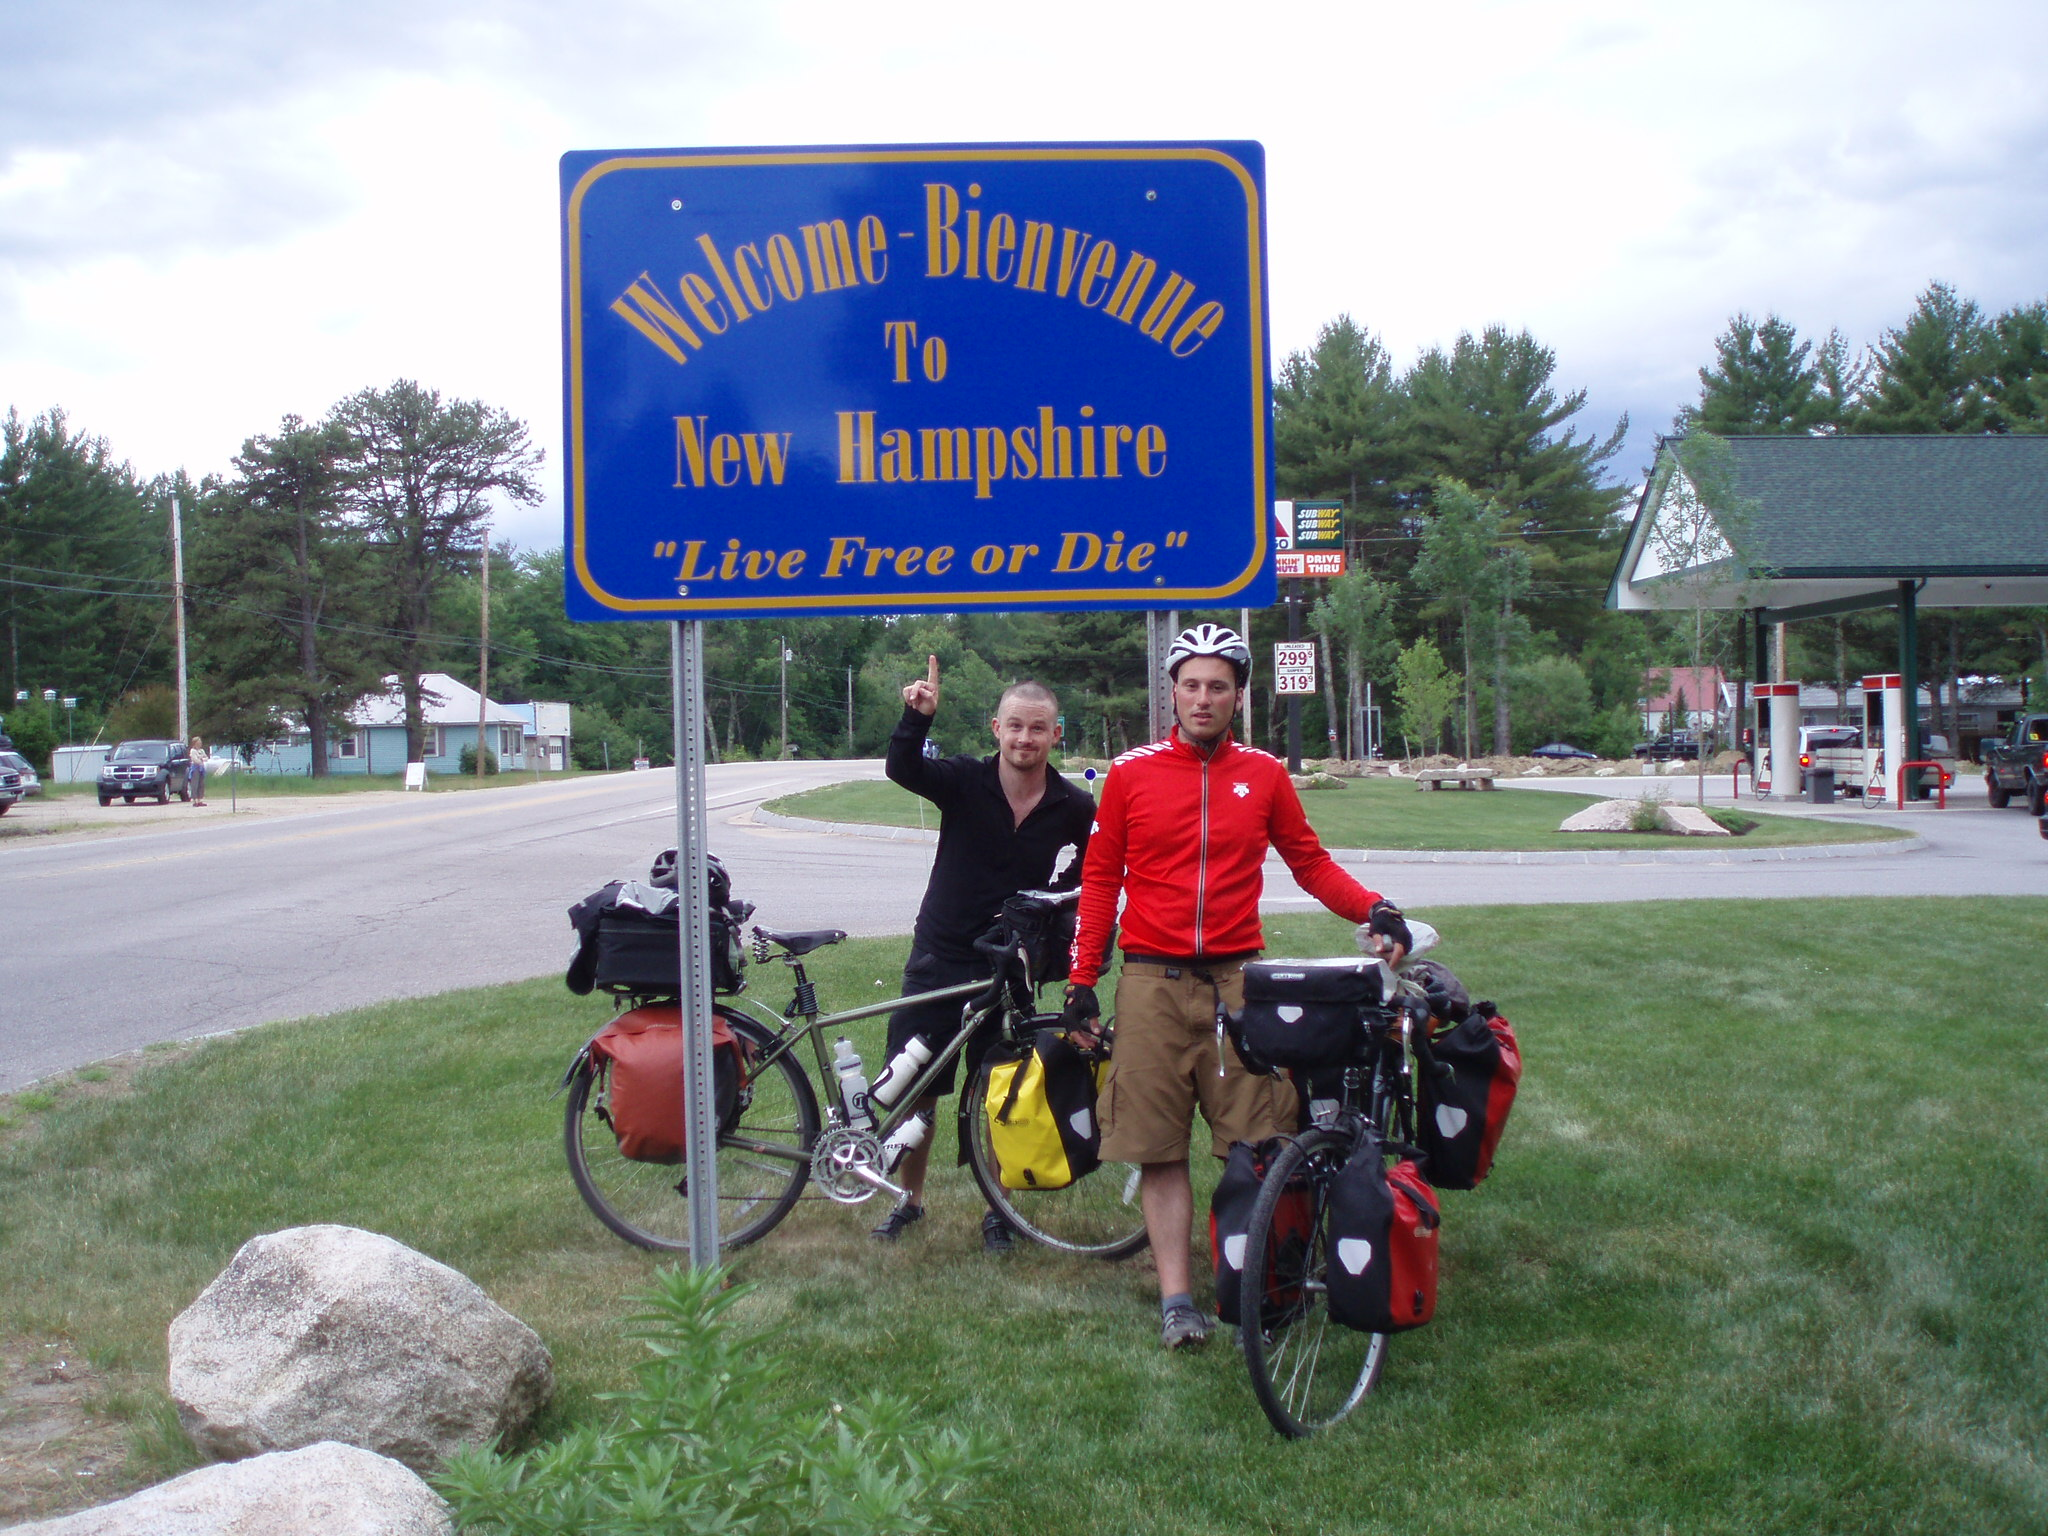 sign board welcoming us on our next destination for our bike tour